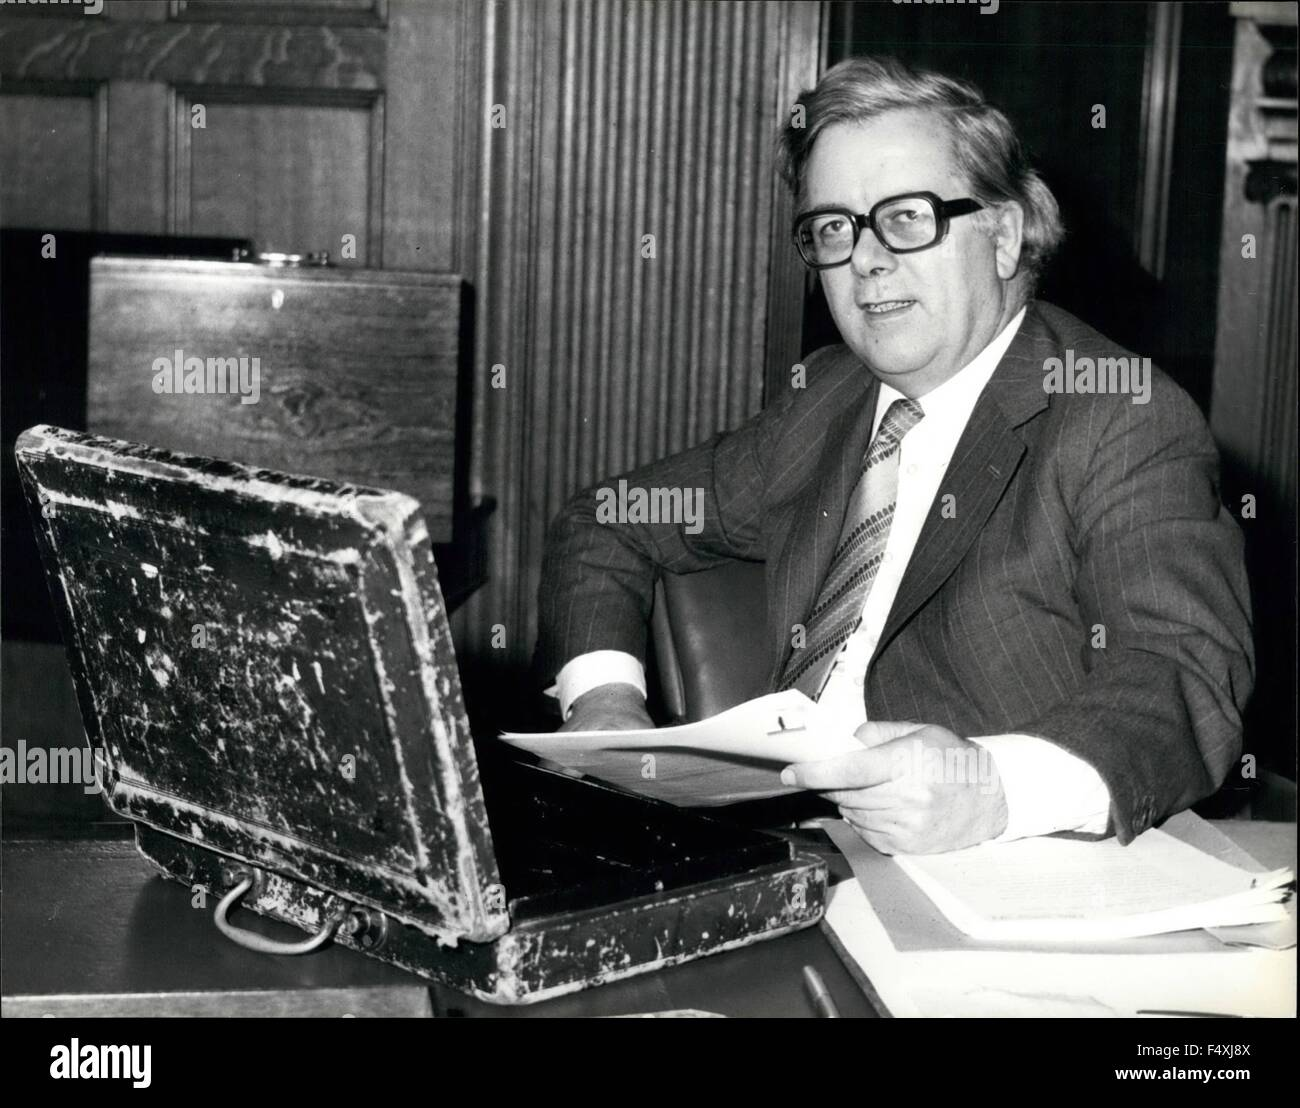 Today he was in his office at the treasury with the traditional dispatch box but we have to wait a little while - Stock Image